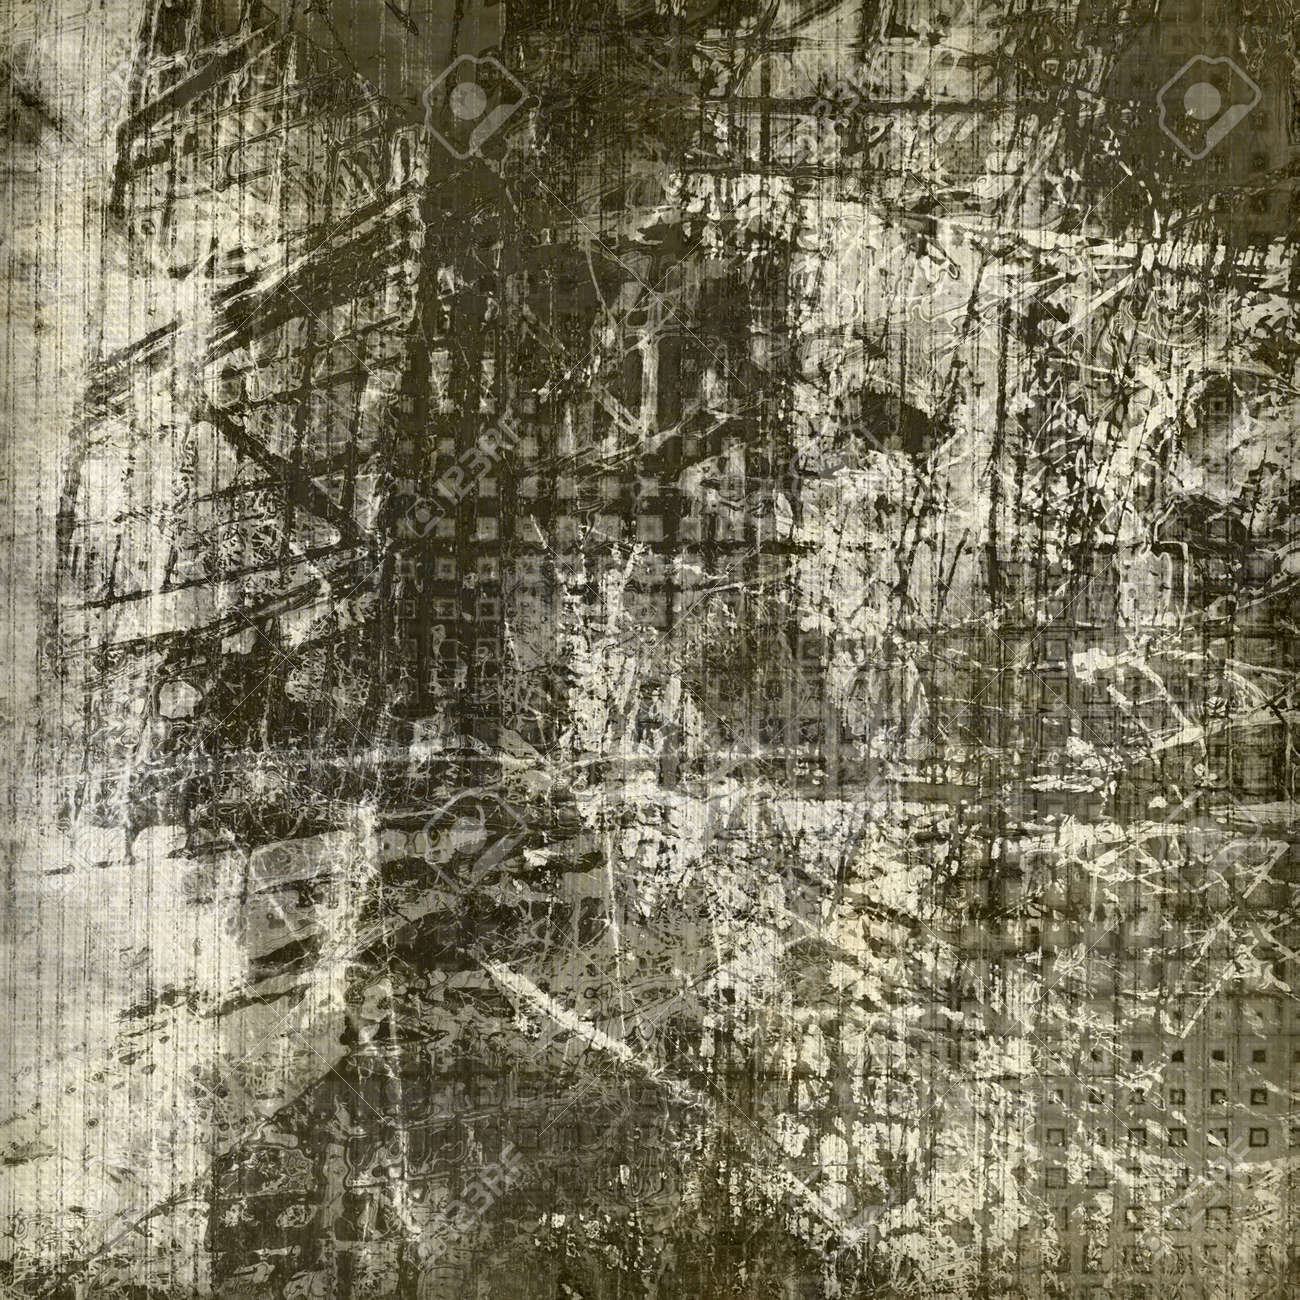 art abstract grunge textured background Stock Photo - 17387848